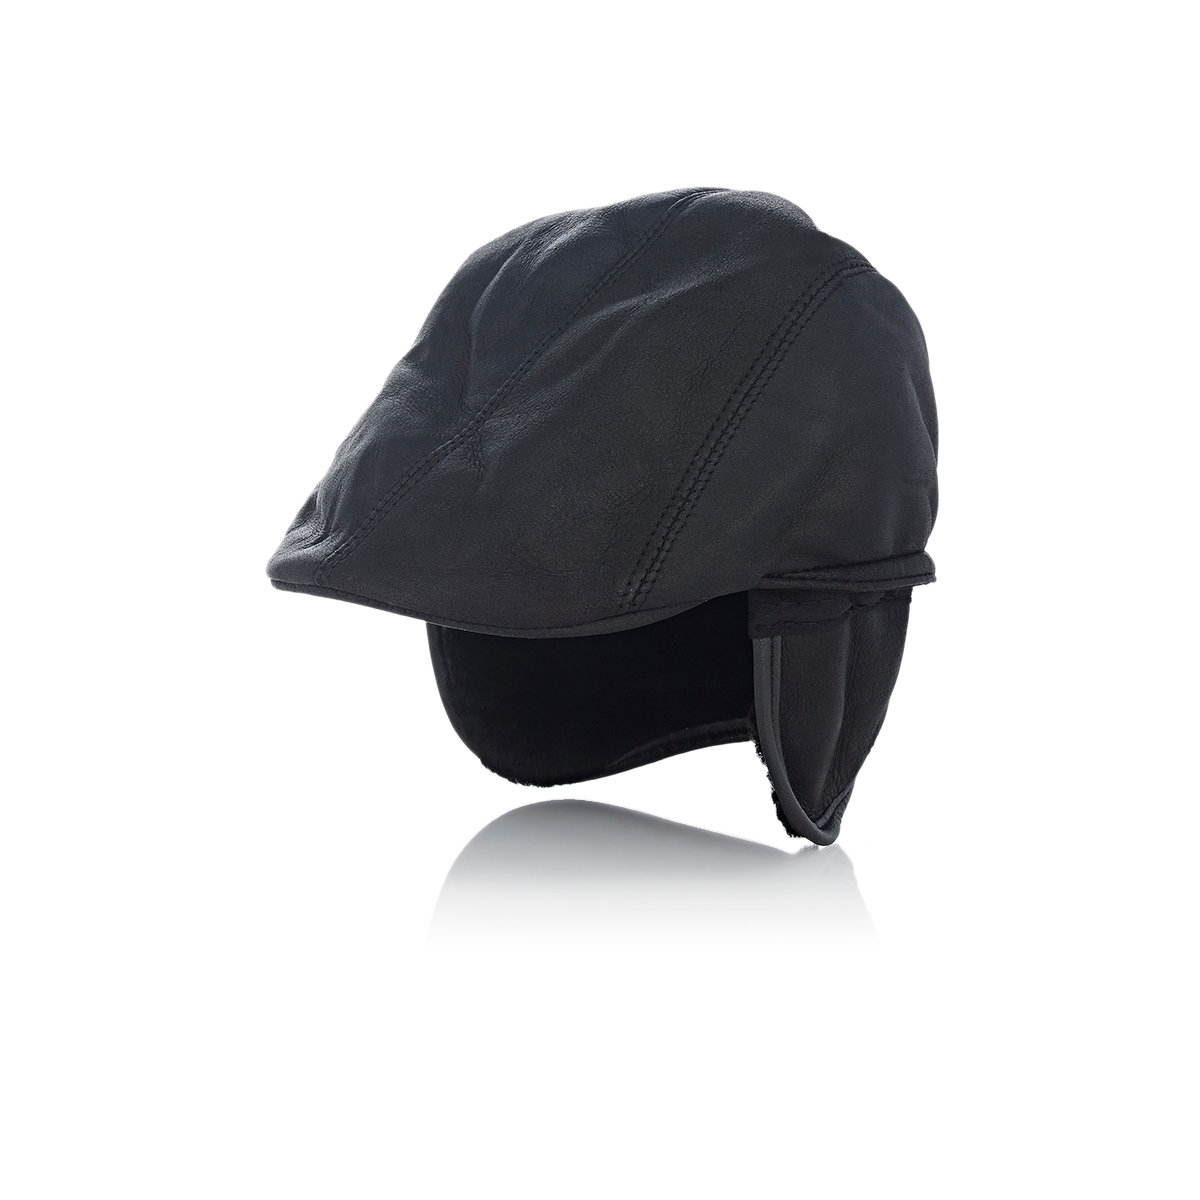 fbca6caa0fe Lyst - Crown Cap Shearling-lined Leather Ivy Cap in Black for Men